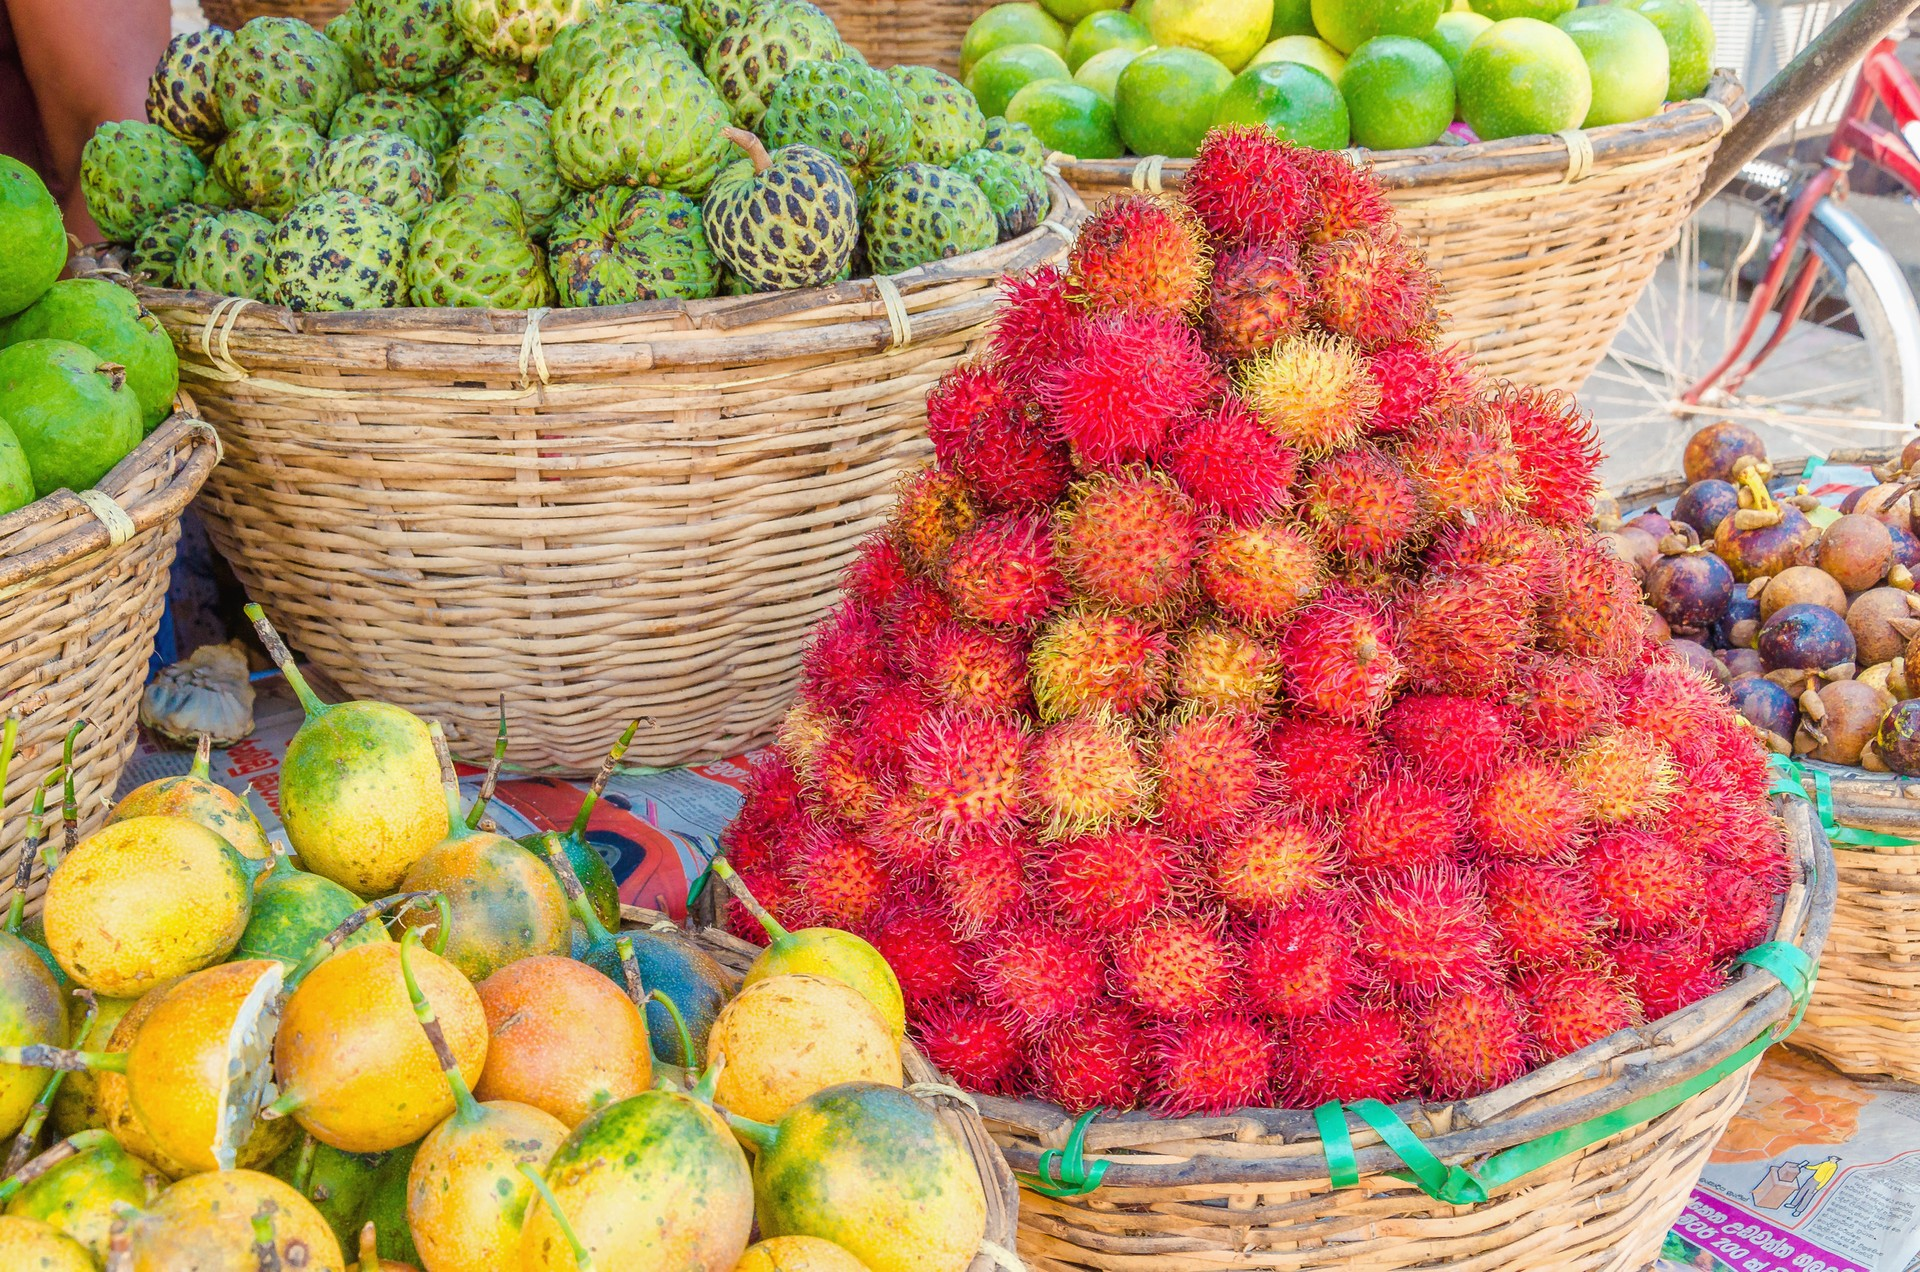 Some colourful fruit at a market